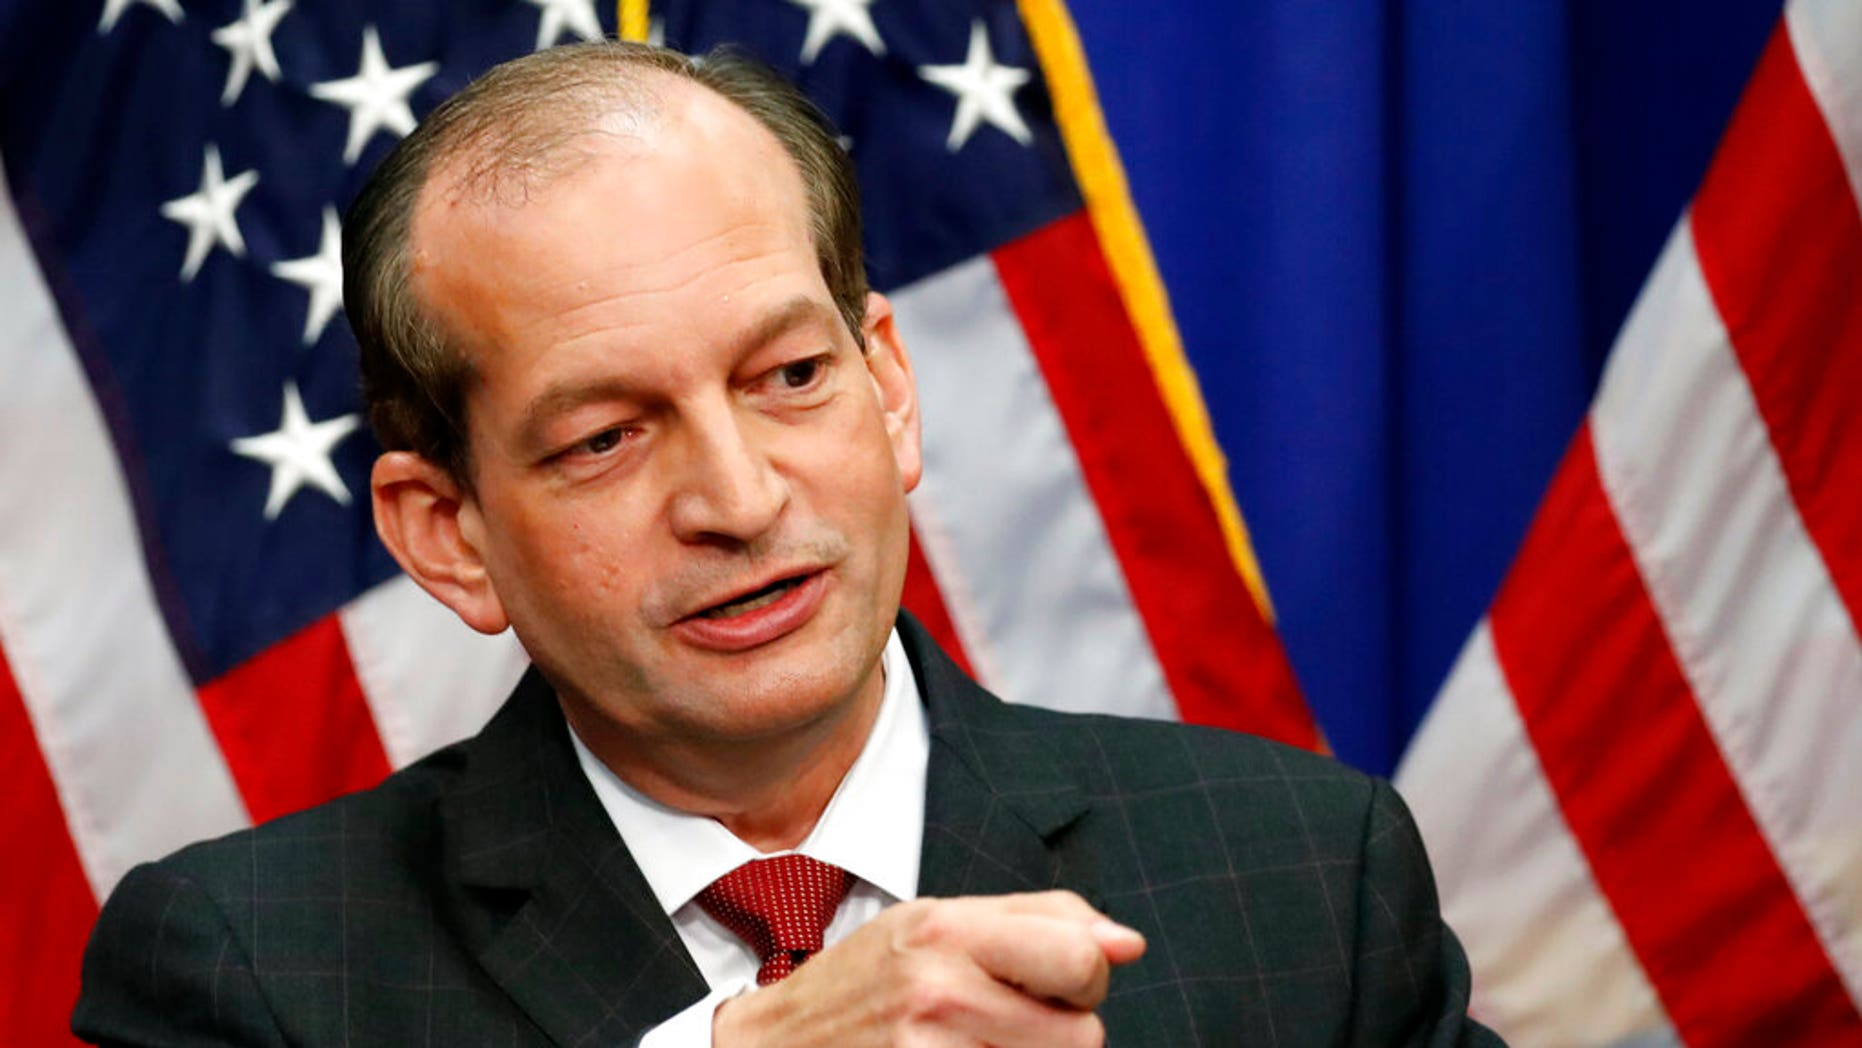 Labor Secretary Alex Acosta speaks during a media accessibility during a Department of Labor, Wednesday, Jul 10, 2019, in Washington. (AP Photo/Alex Brandon)